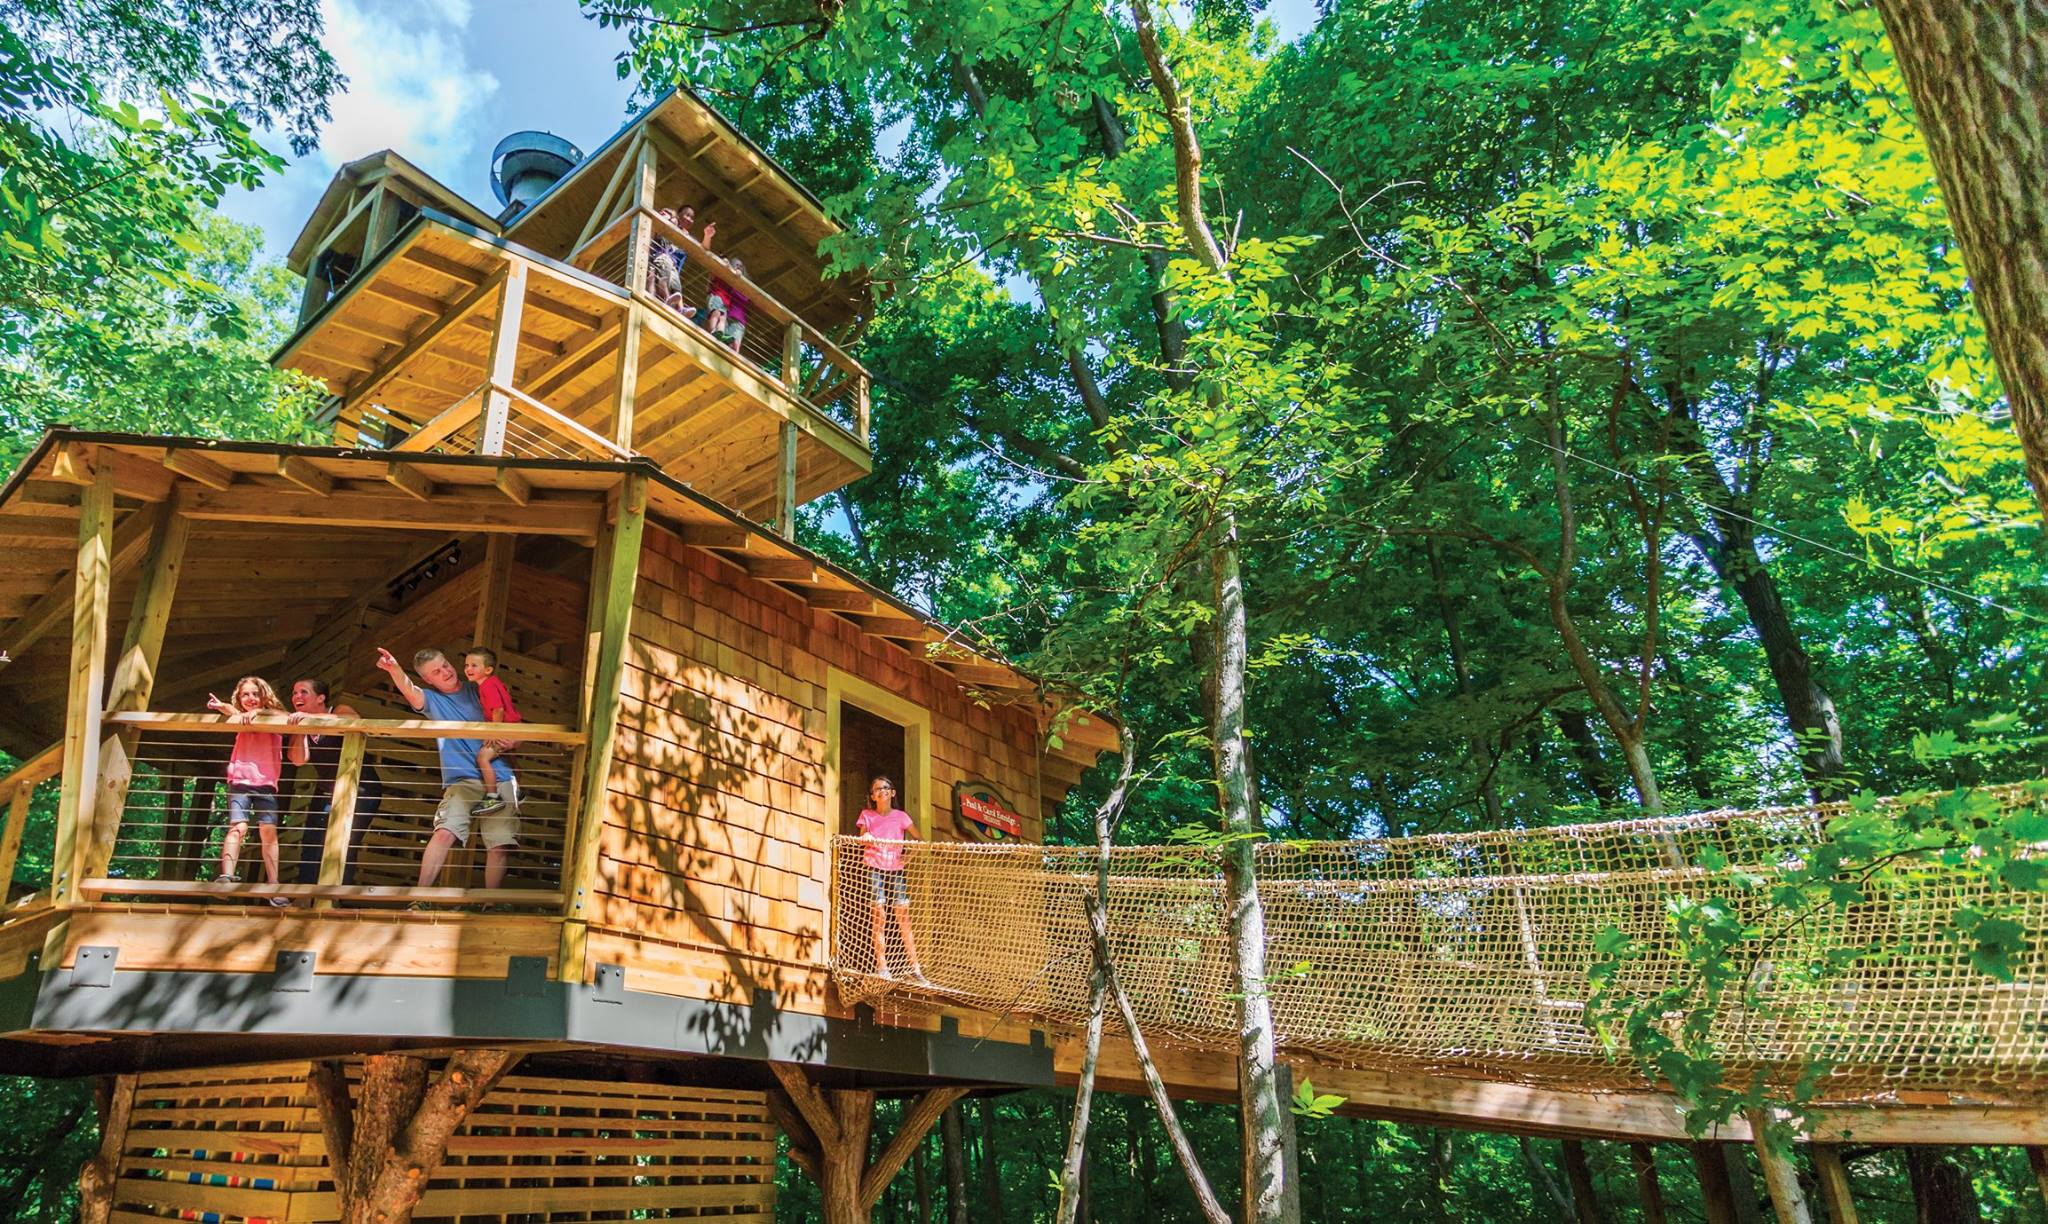 Visit This Amazing Adult Friendly Tree House In Indiana